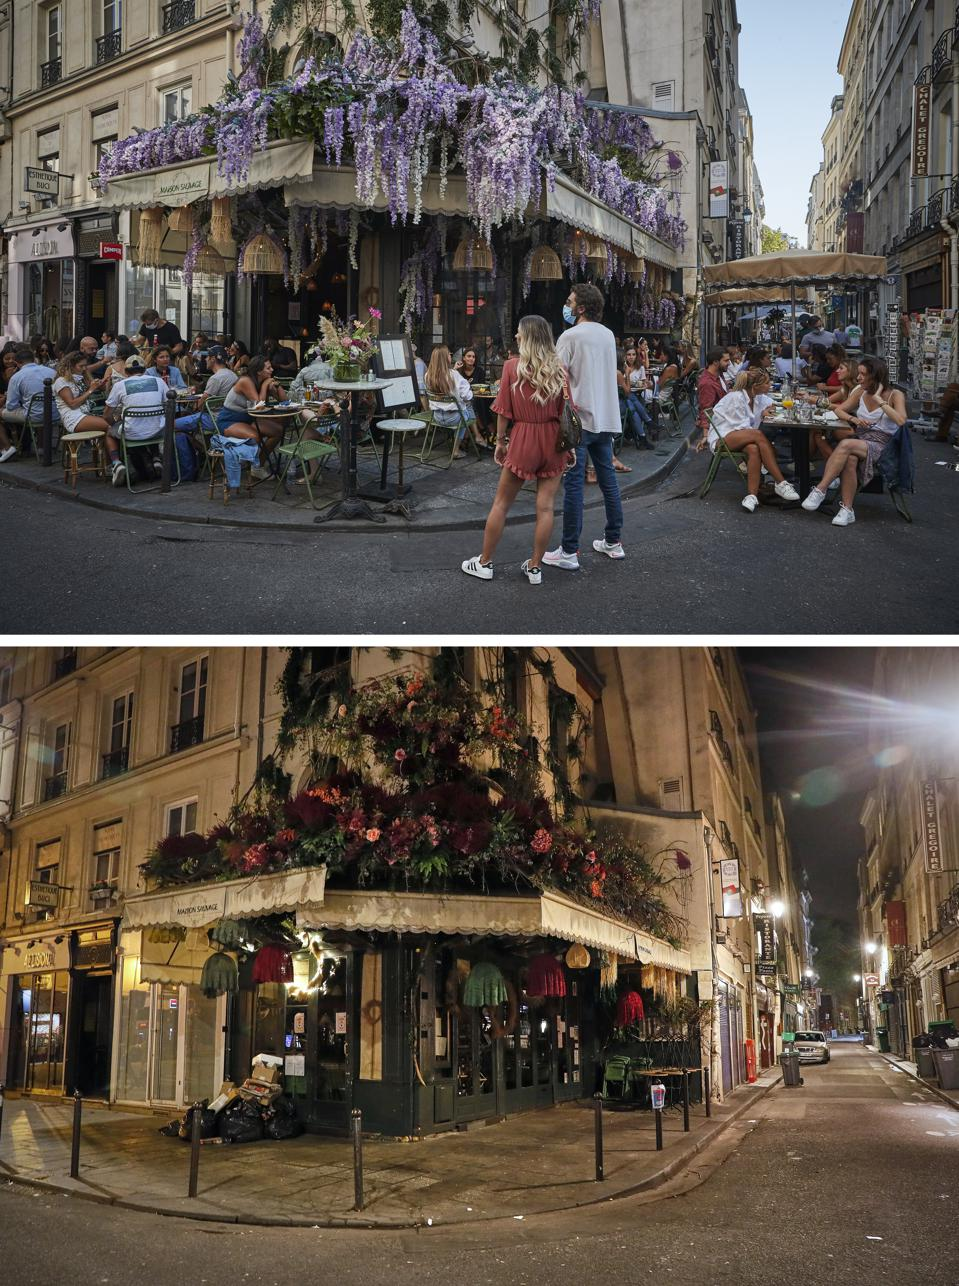 Before And After: Paris Amid Coronavirus Curfew